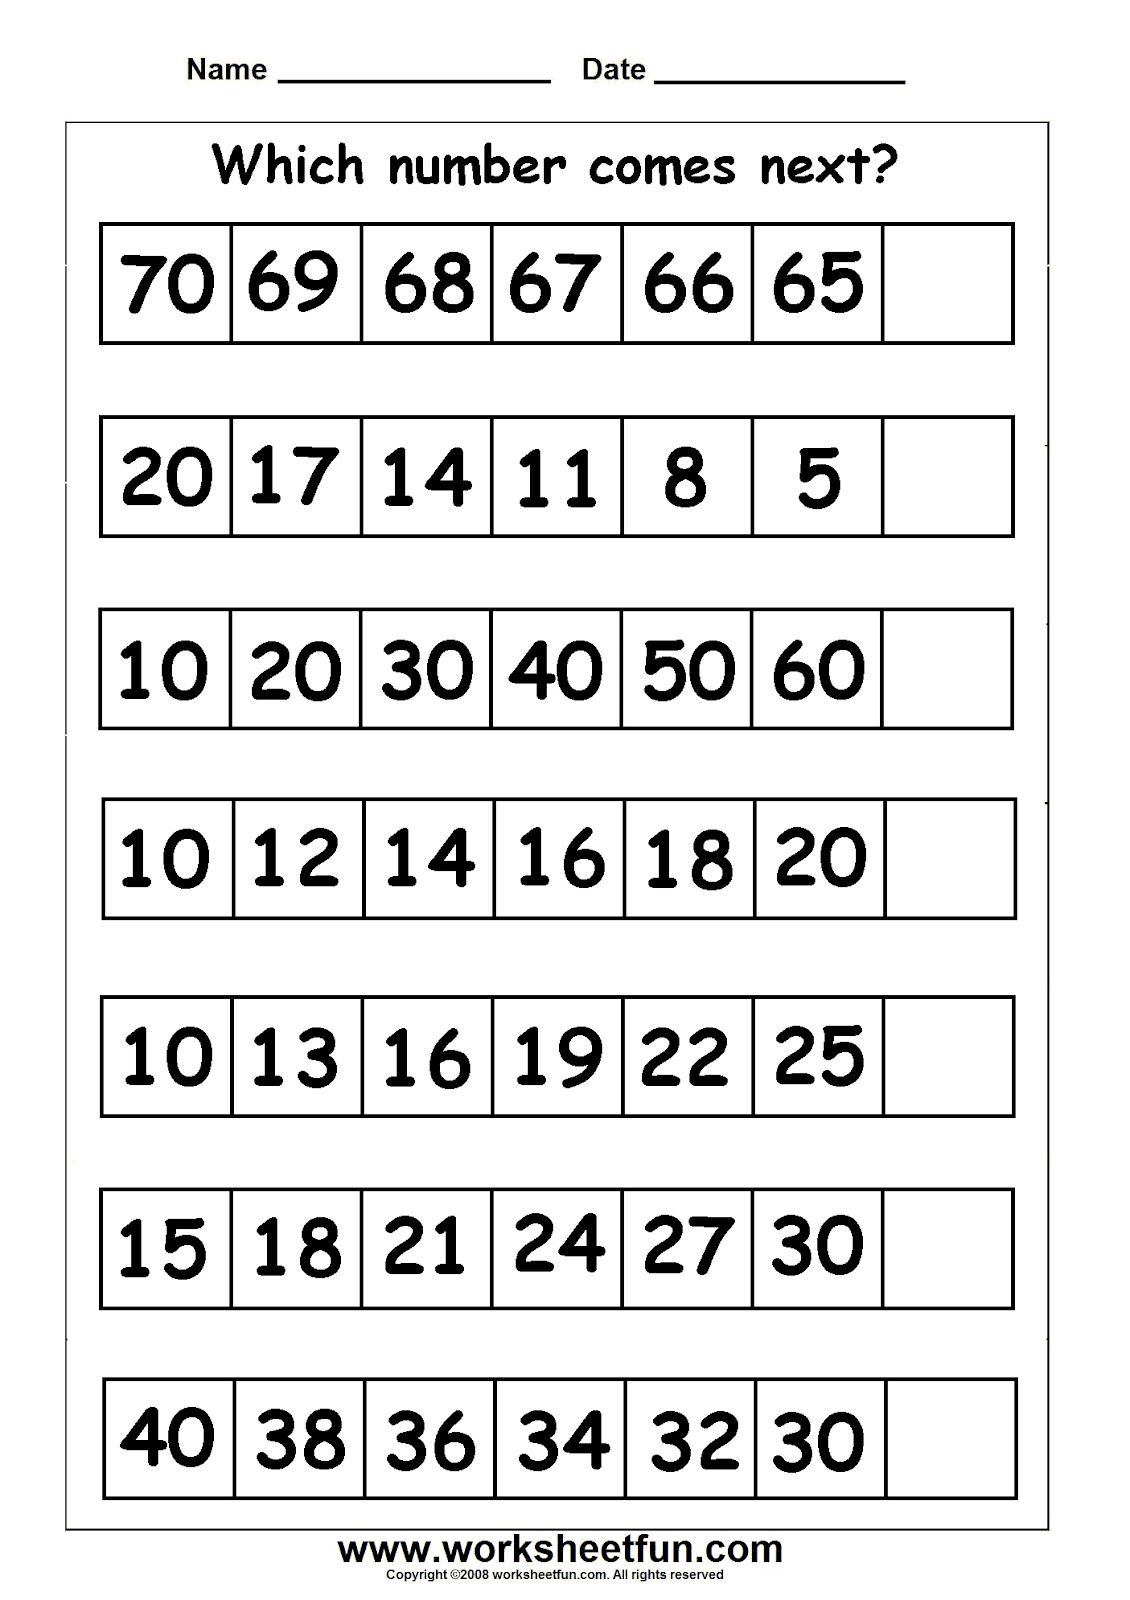 Uncategorized Grade 3 Math Patterns Worksheets 7 1 5 counting number of jumps 2 sequencing numerals 37 3 first grade mathshomeschooling